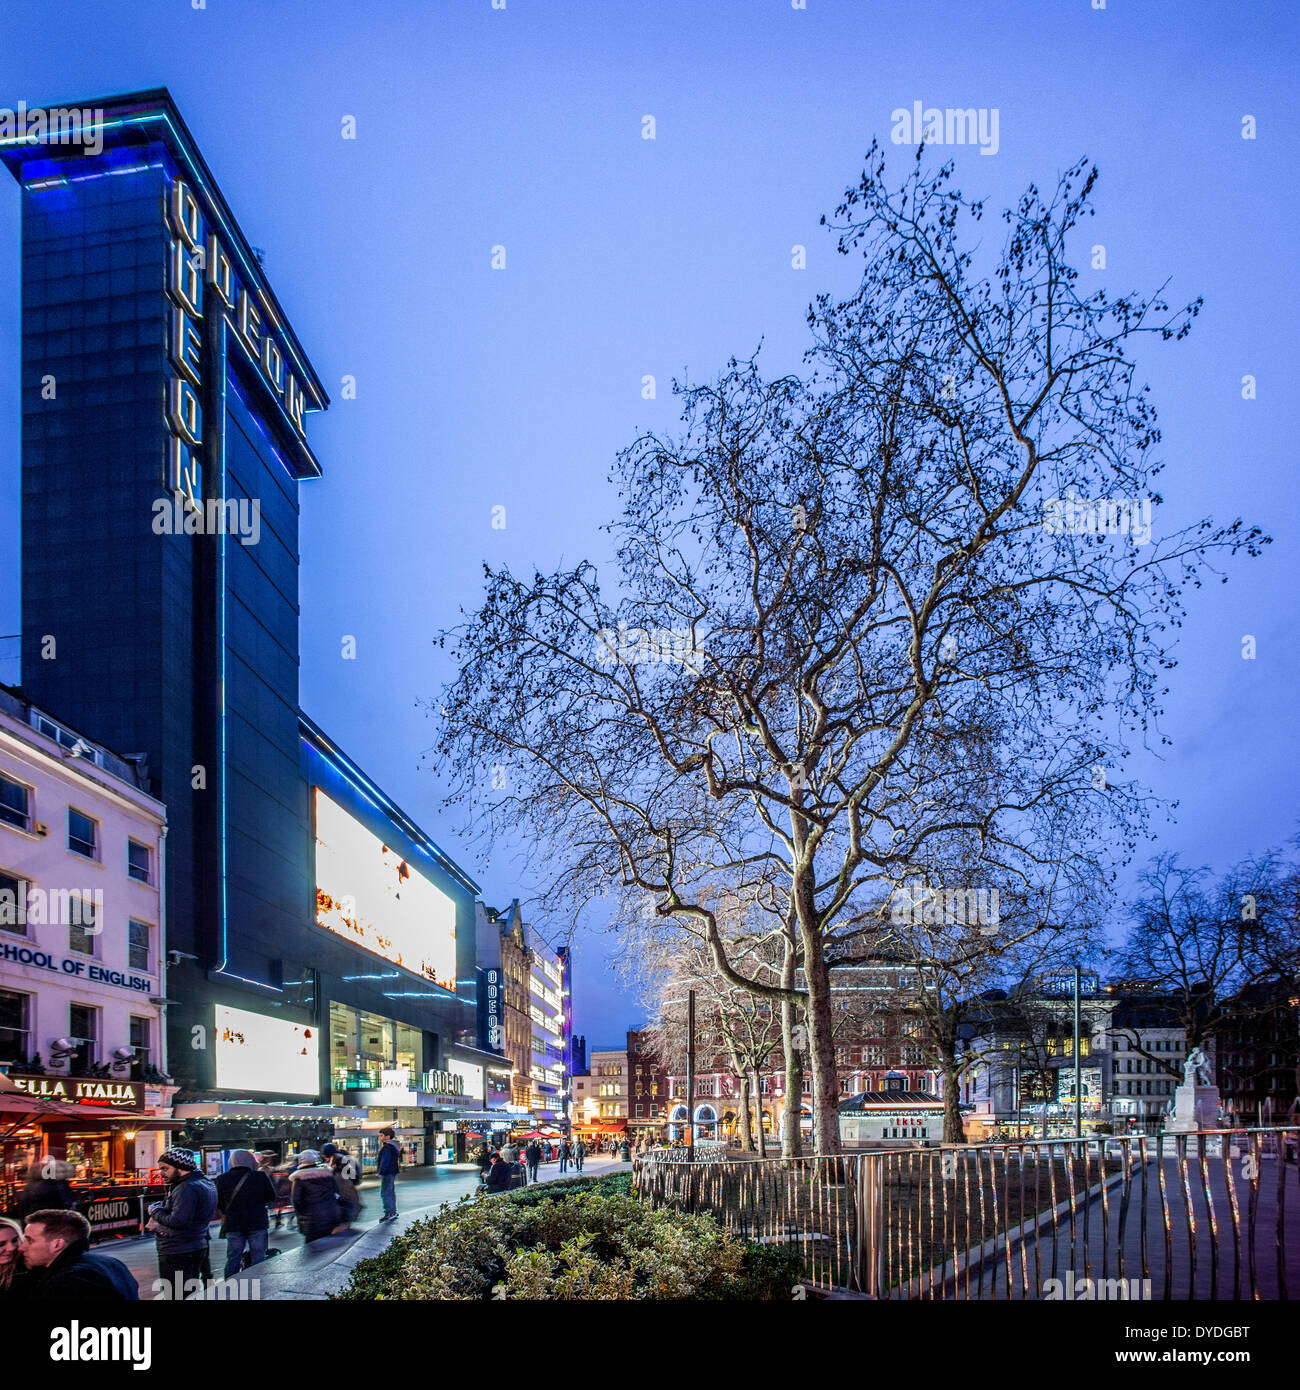 The Odeon Leicester Square at dusk. Stock Photo